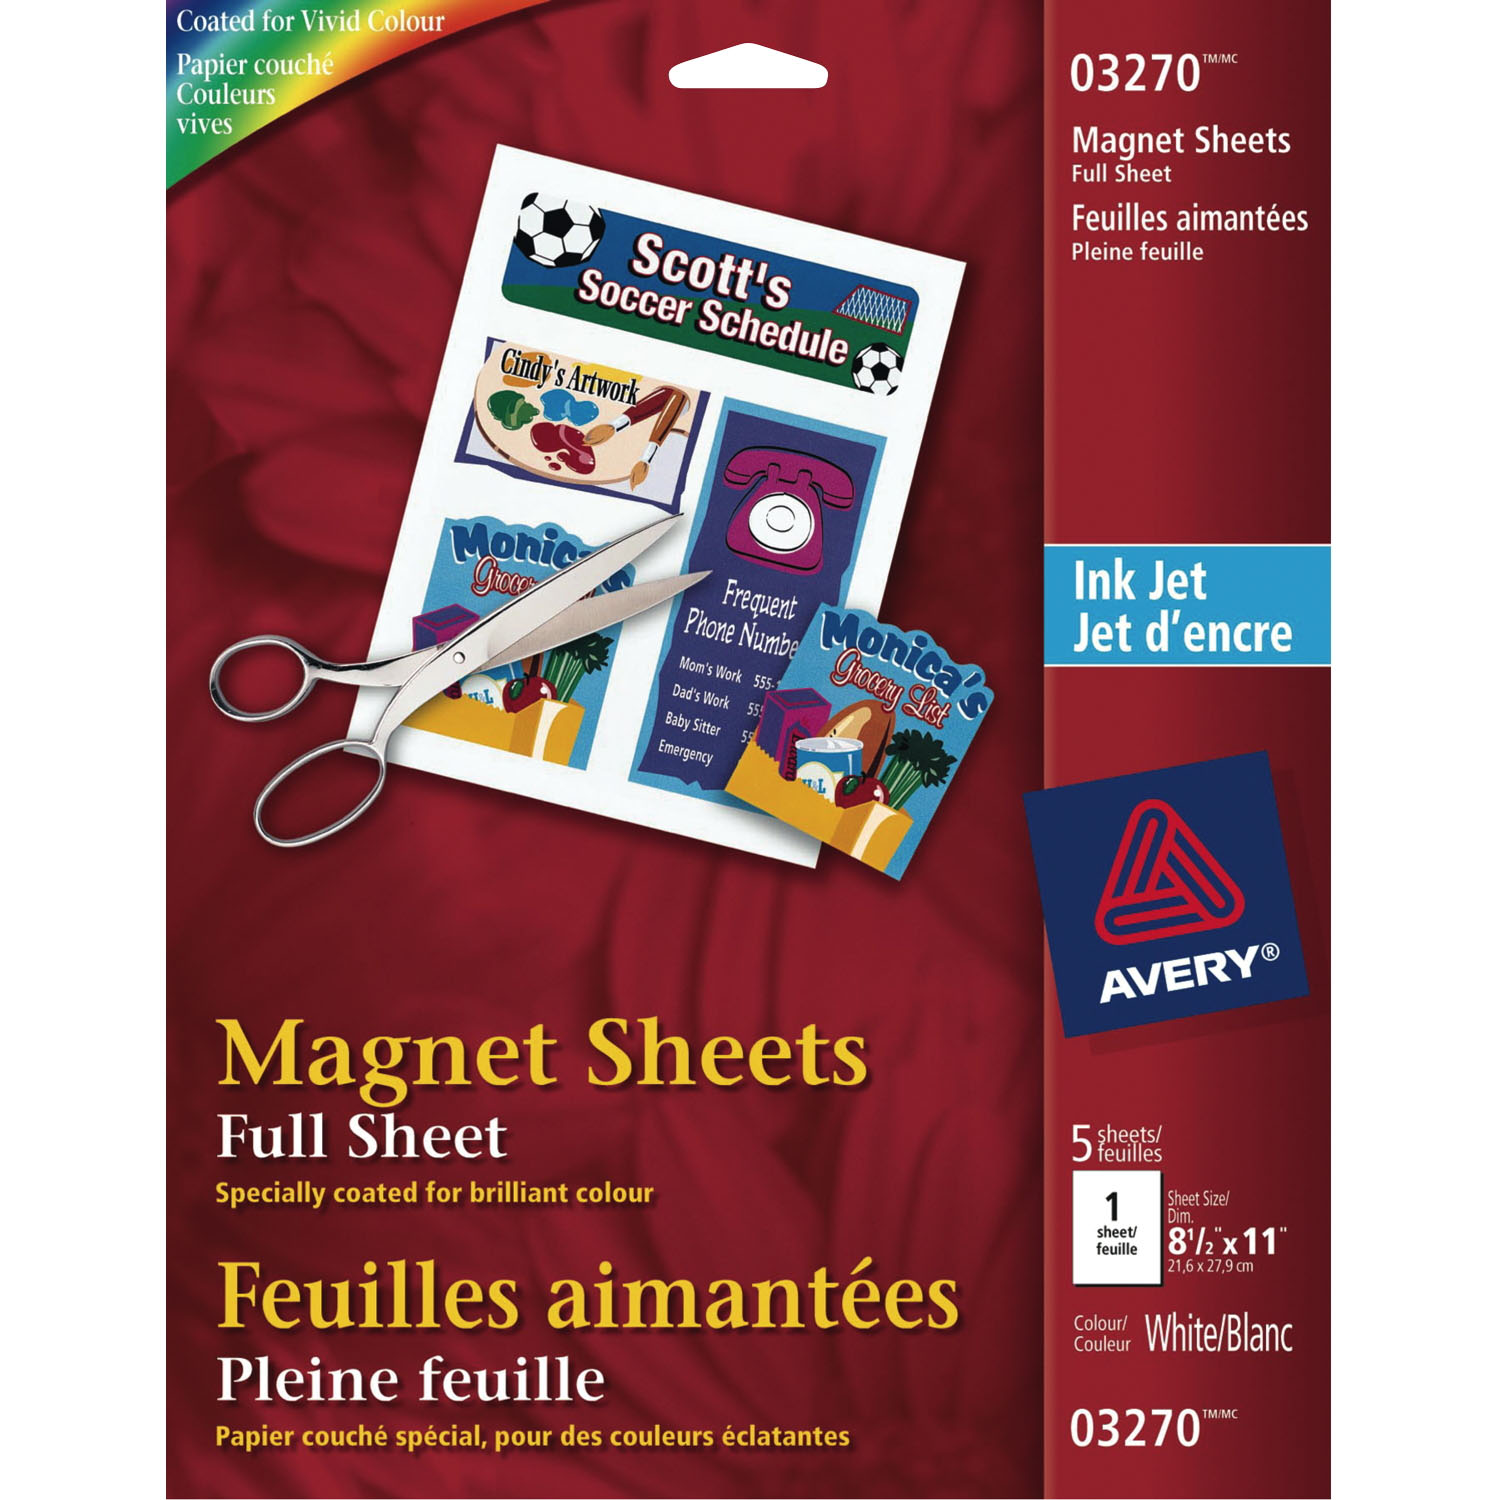 Nifty image pertaining to avery printable magnet sheets